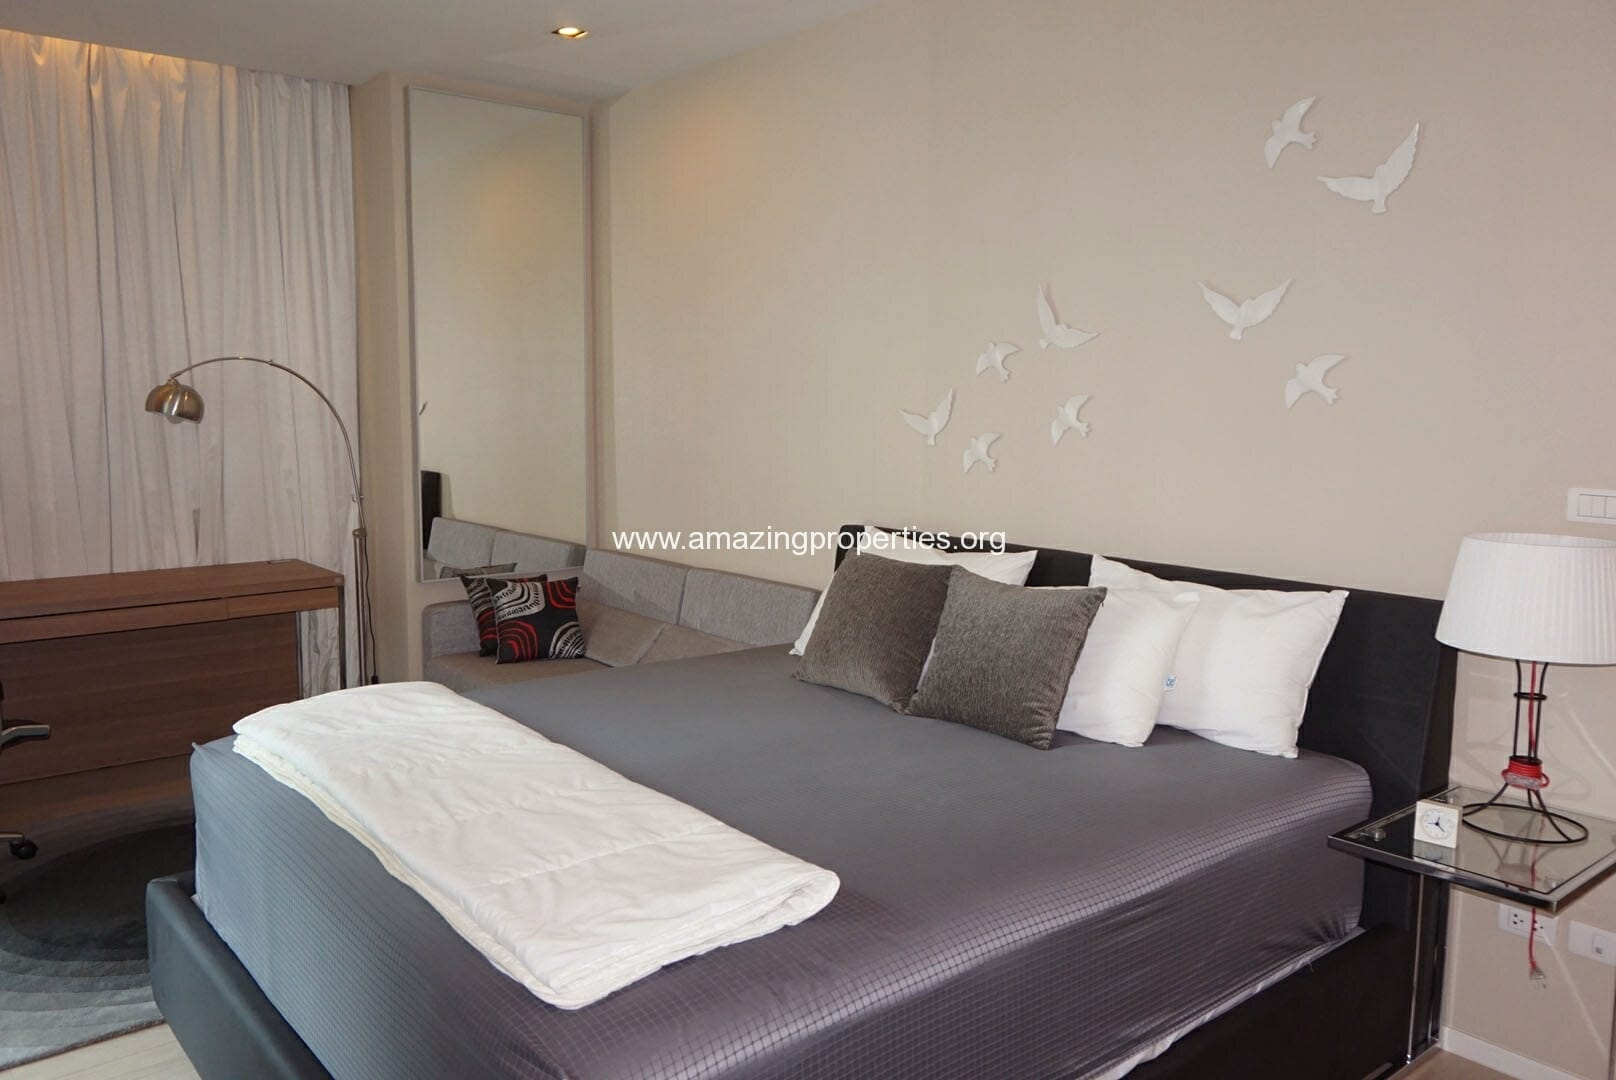 Duplex 2 bedroom The Room Sukhumvit 21